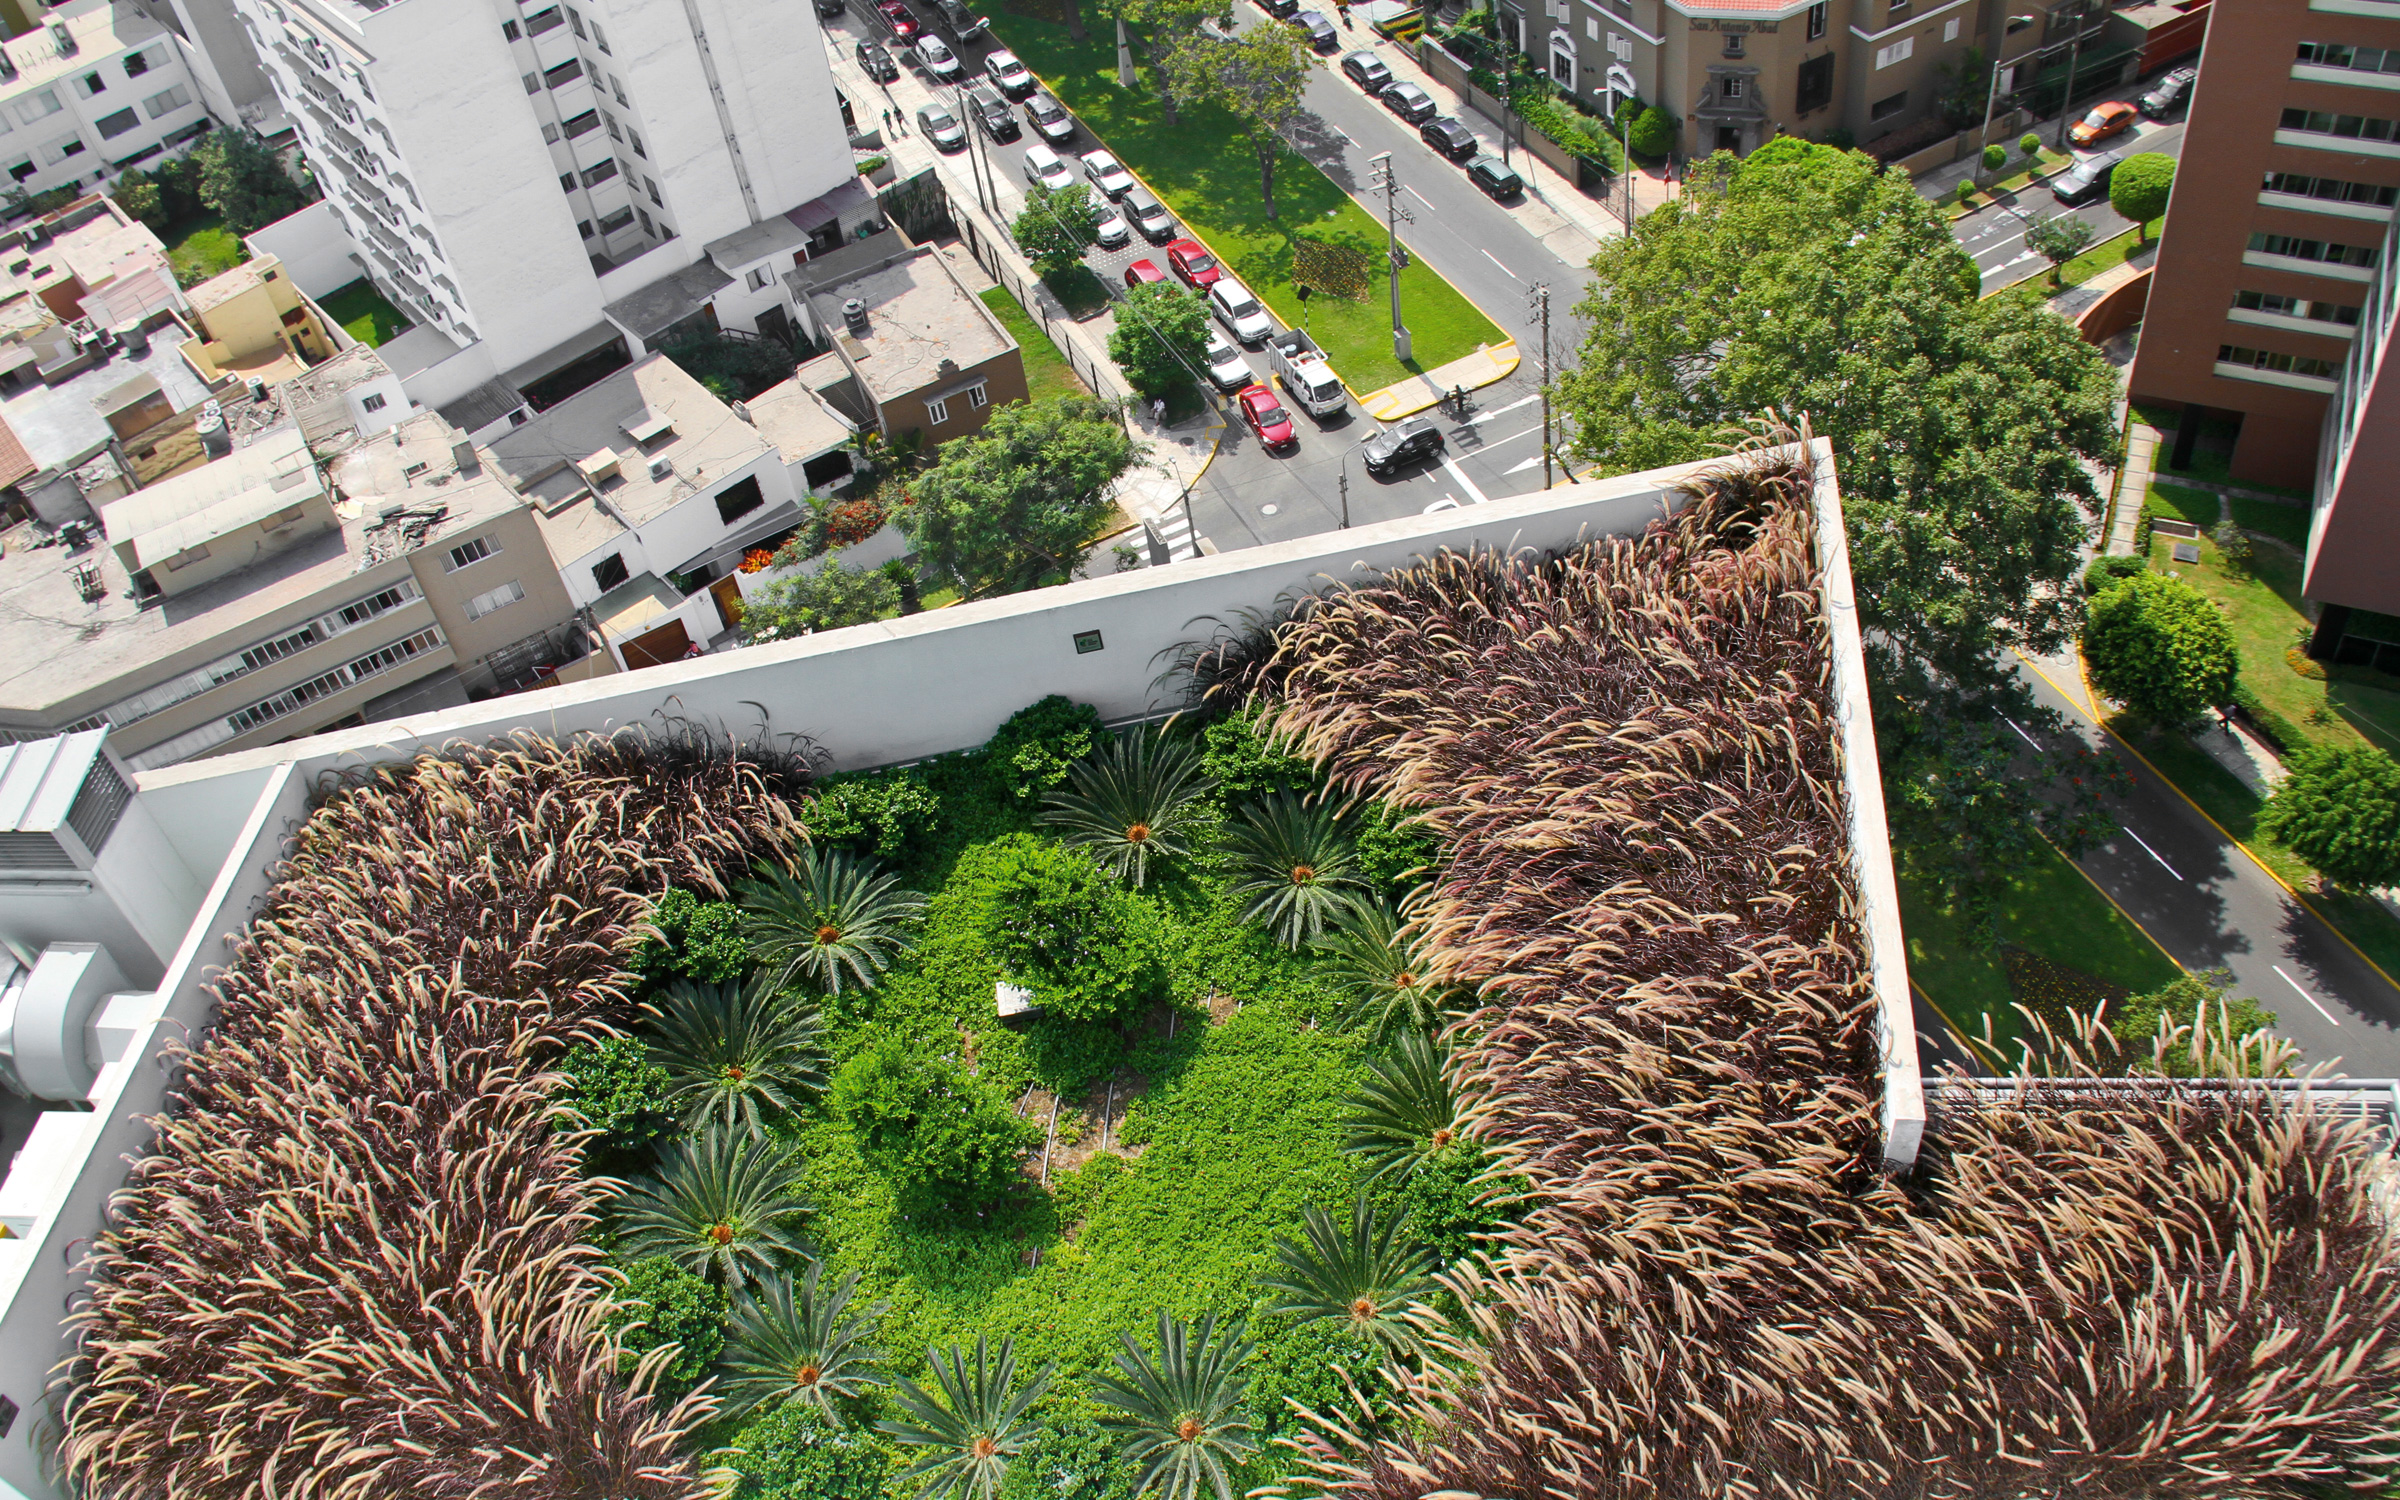 Bird's eye view of a roof garden with ornamental grasses and smal palm trees